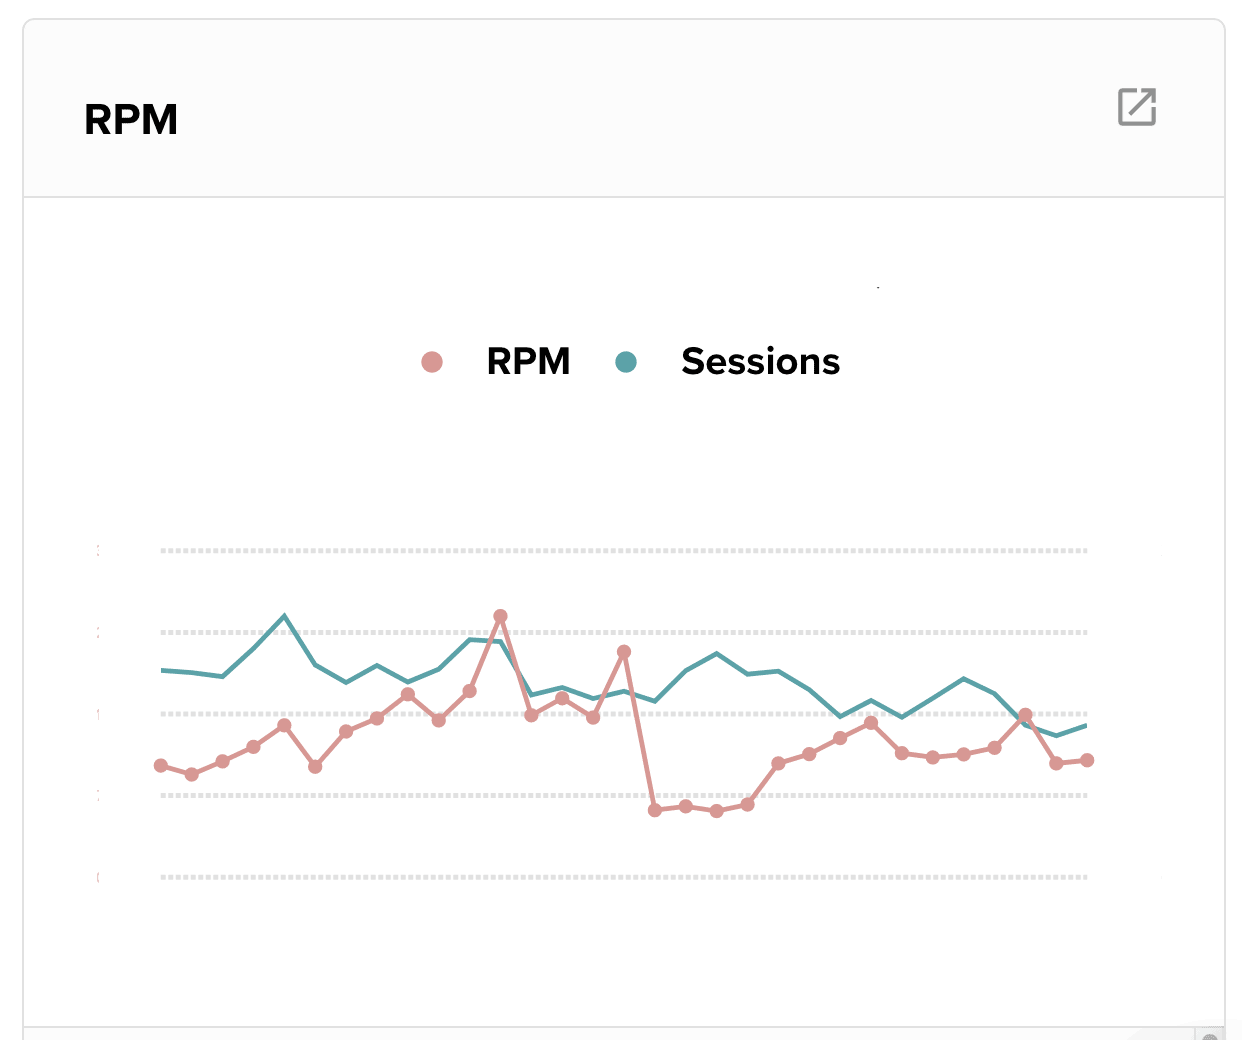 a graphic showing RPM drop from rebranding